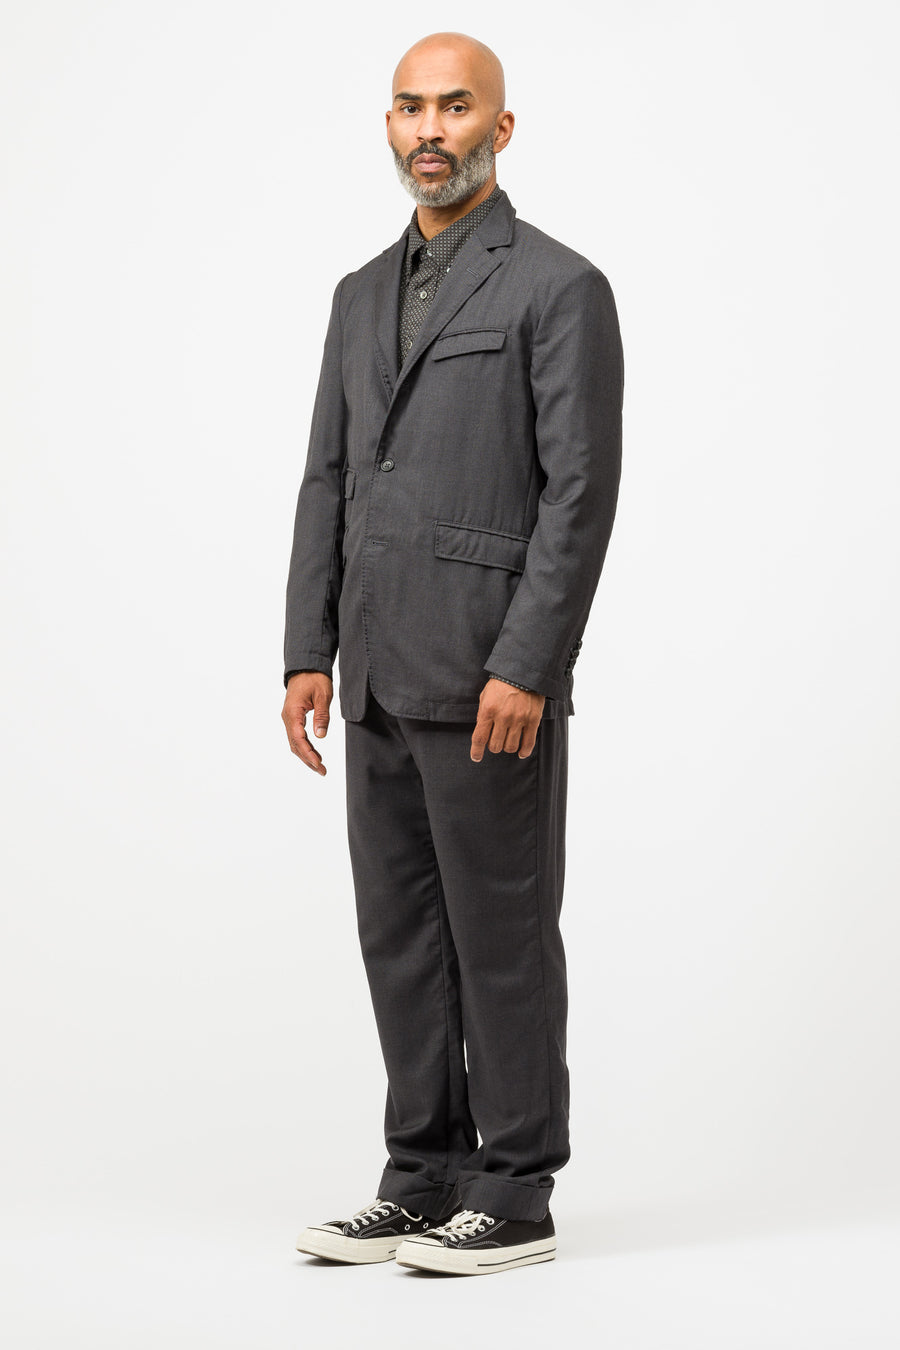 Engineered Garments Andover Jacket in Charcoal - Notre